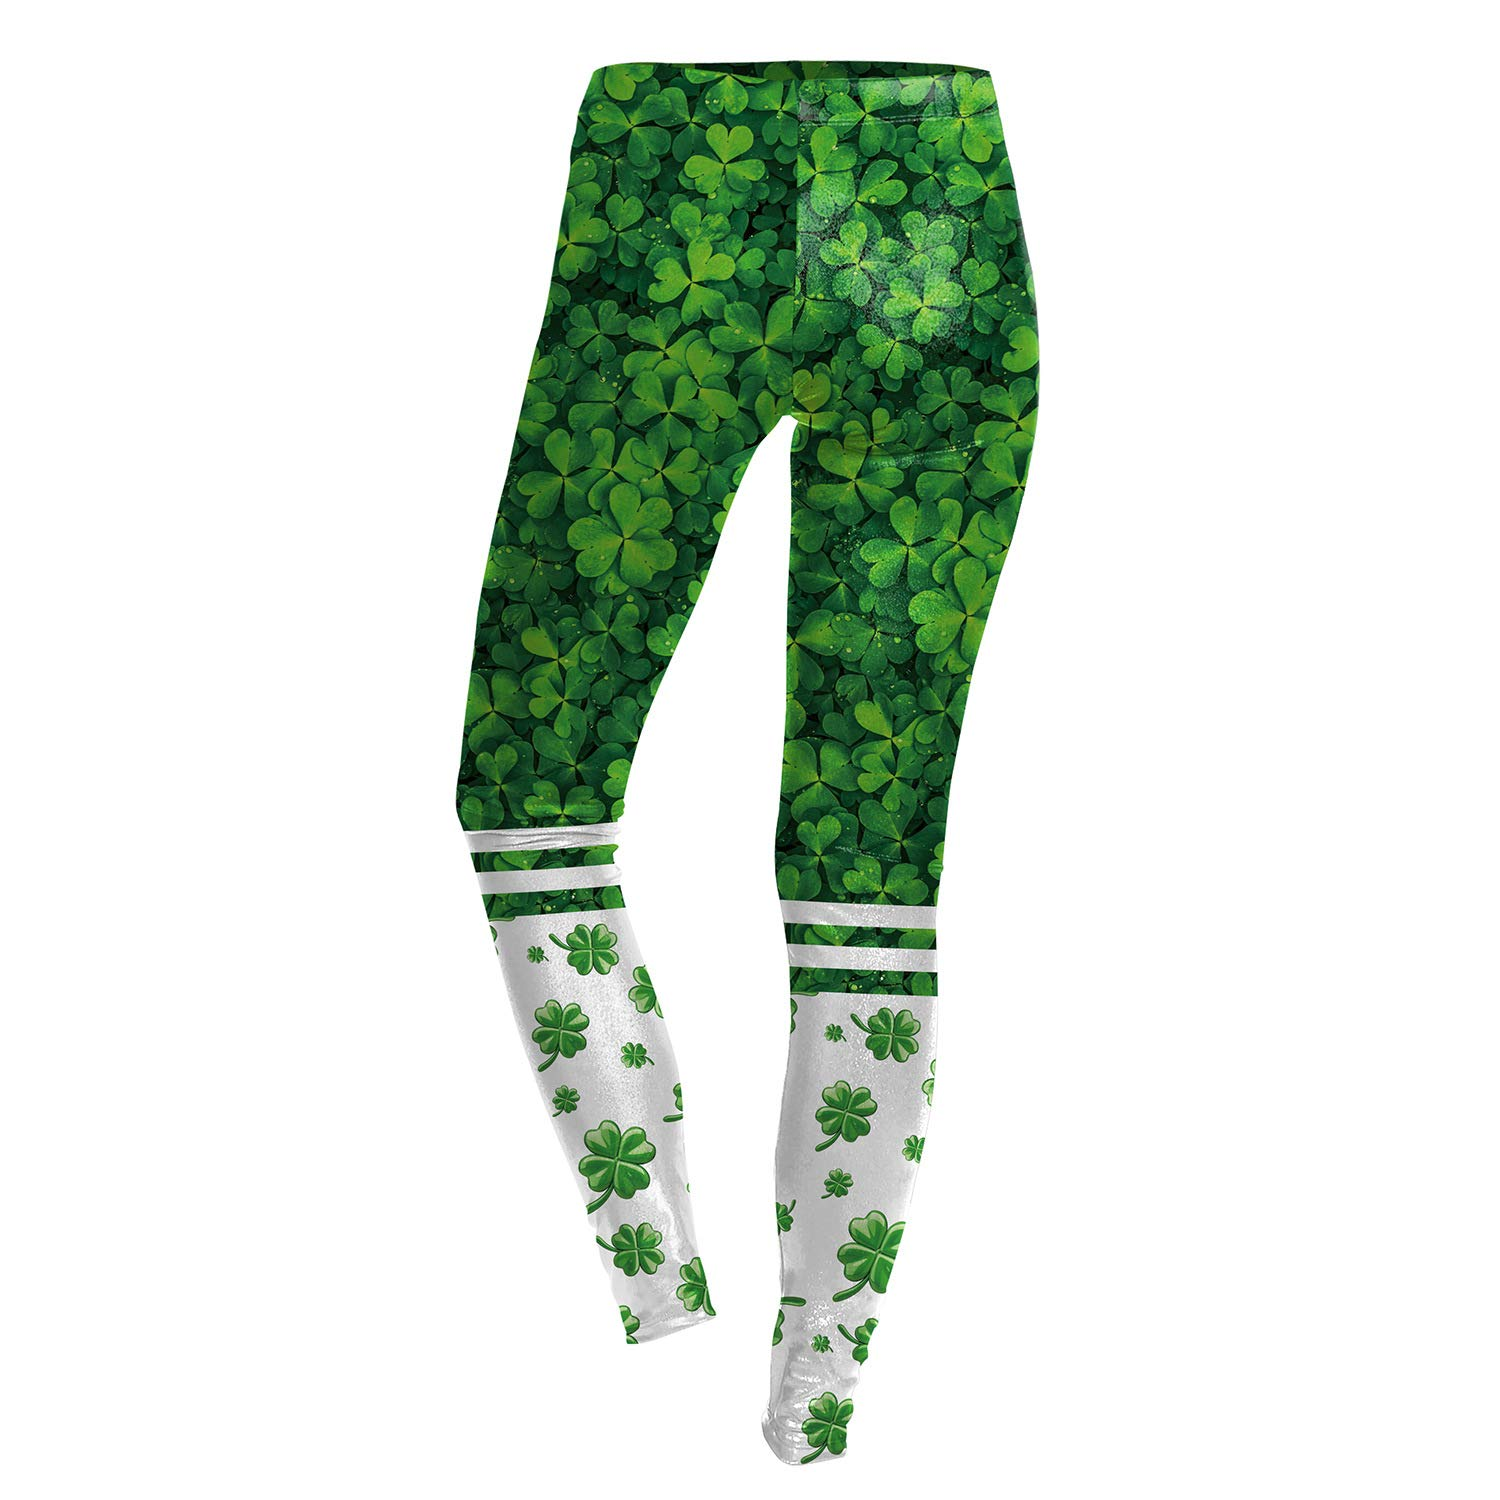 415f5c255baee4 Fyuof St. Patrick's Day Women's Sexy Clover Printed Irish Green Elastic  Leggings Yoga Pants: Amazon.in: Clothing & Accessories